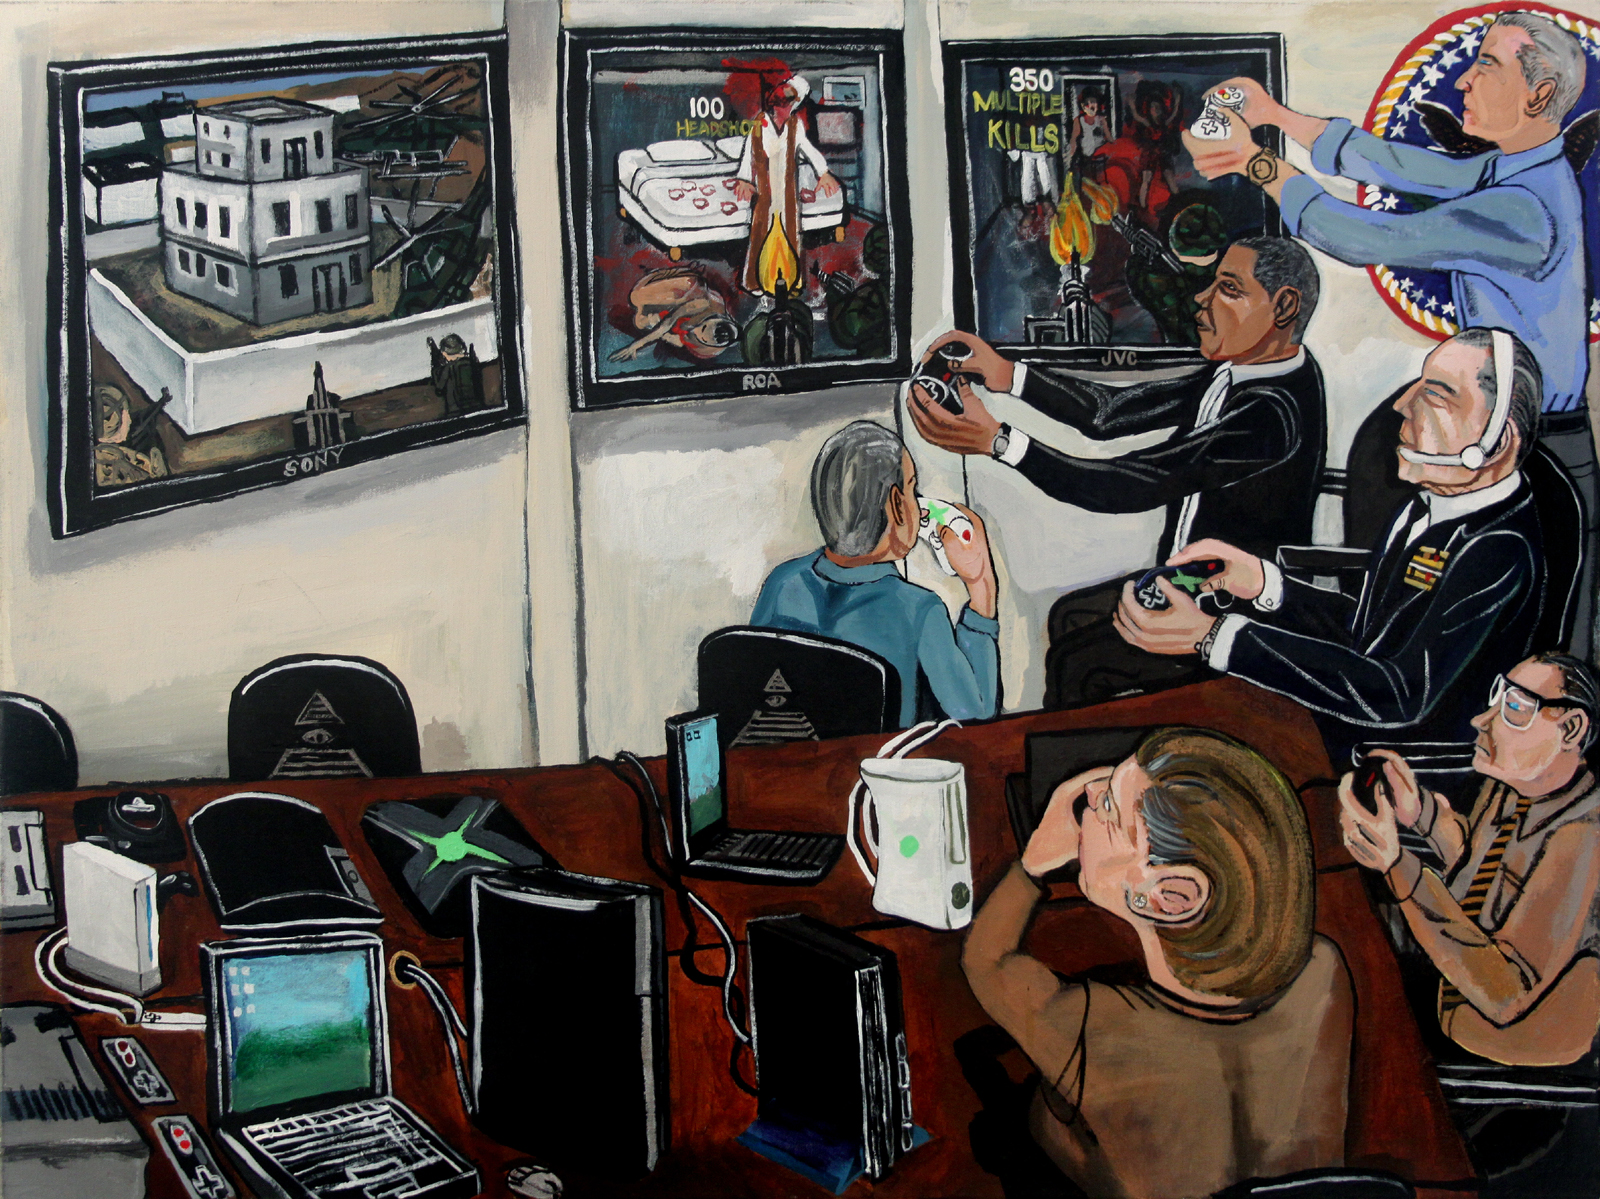 El Franco Lee, Obama vs Osama, 2011, acrylic on canvas, 2 x 36 x 48 inches